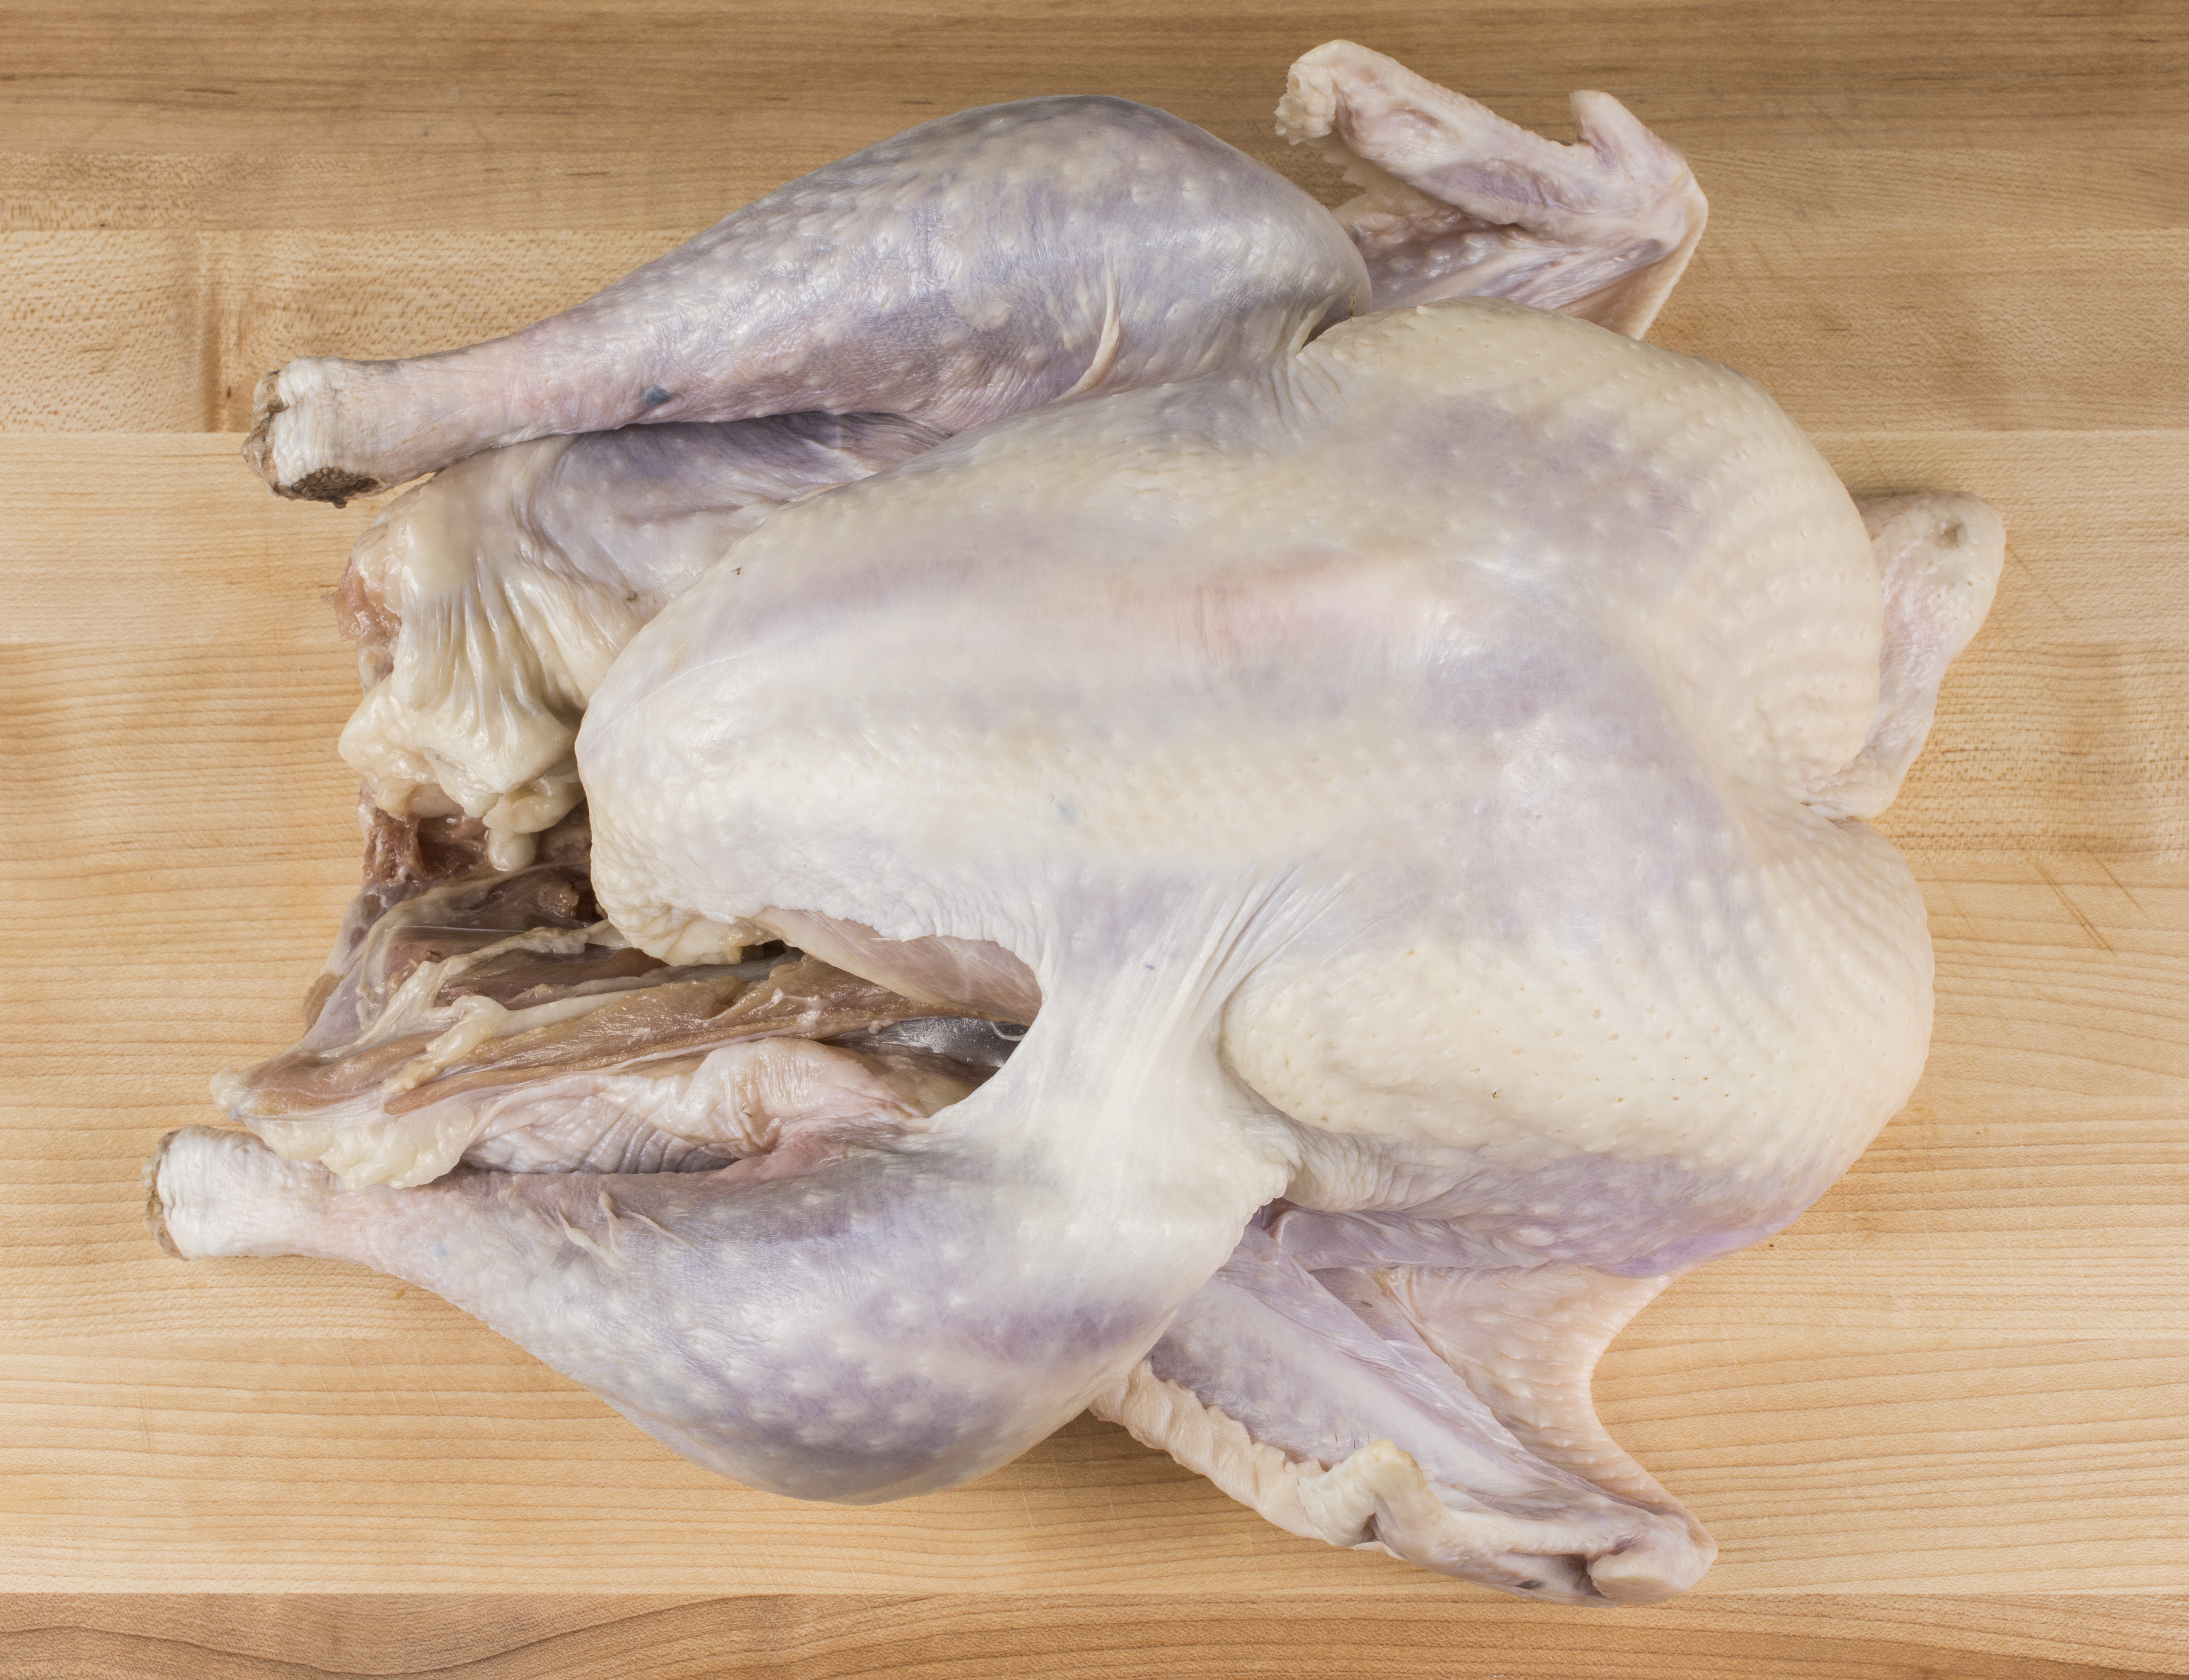 Ingredient Of The Day: Turkey